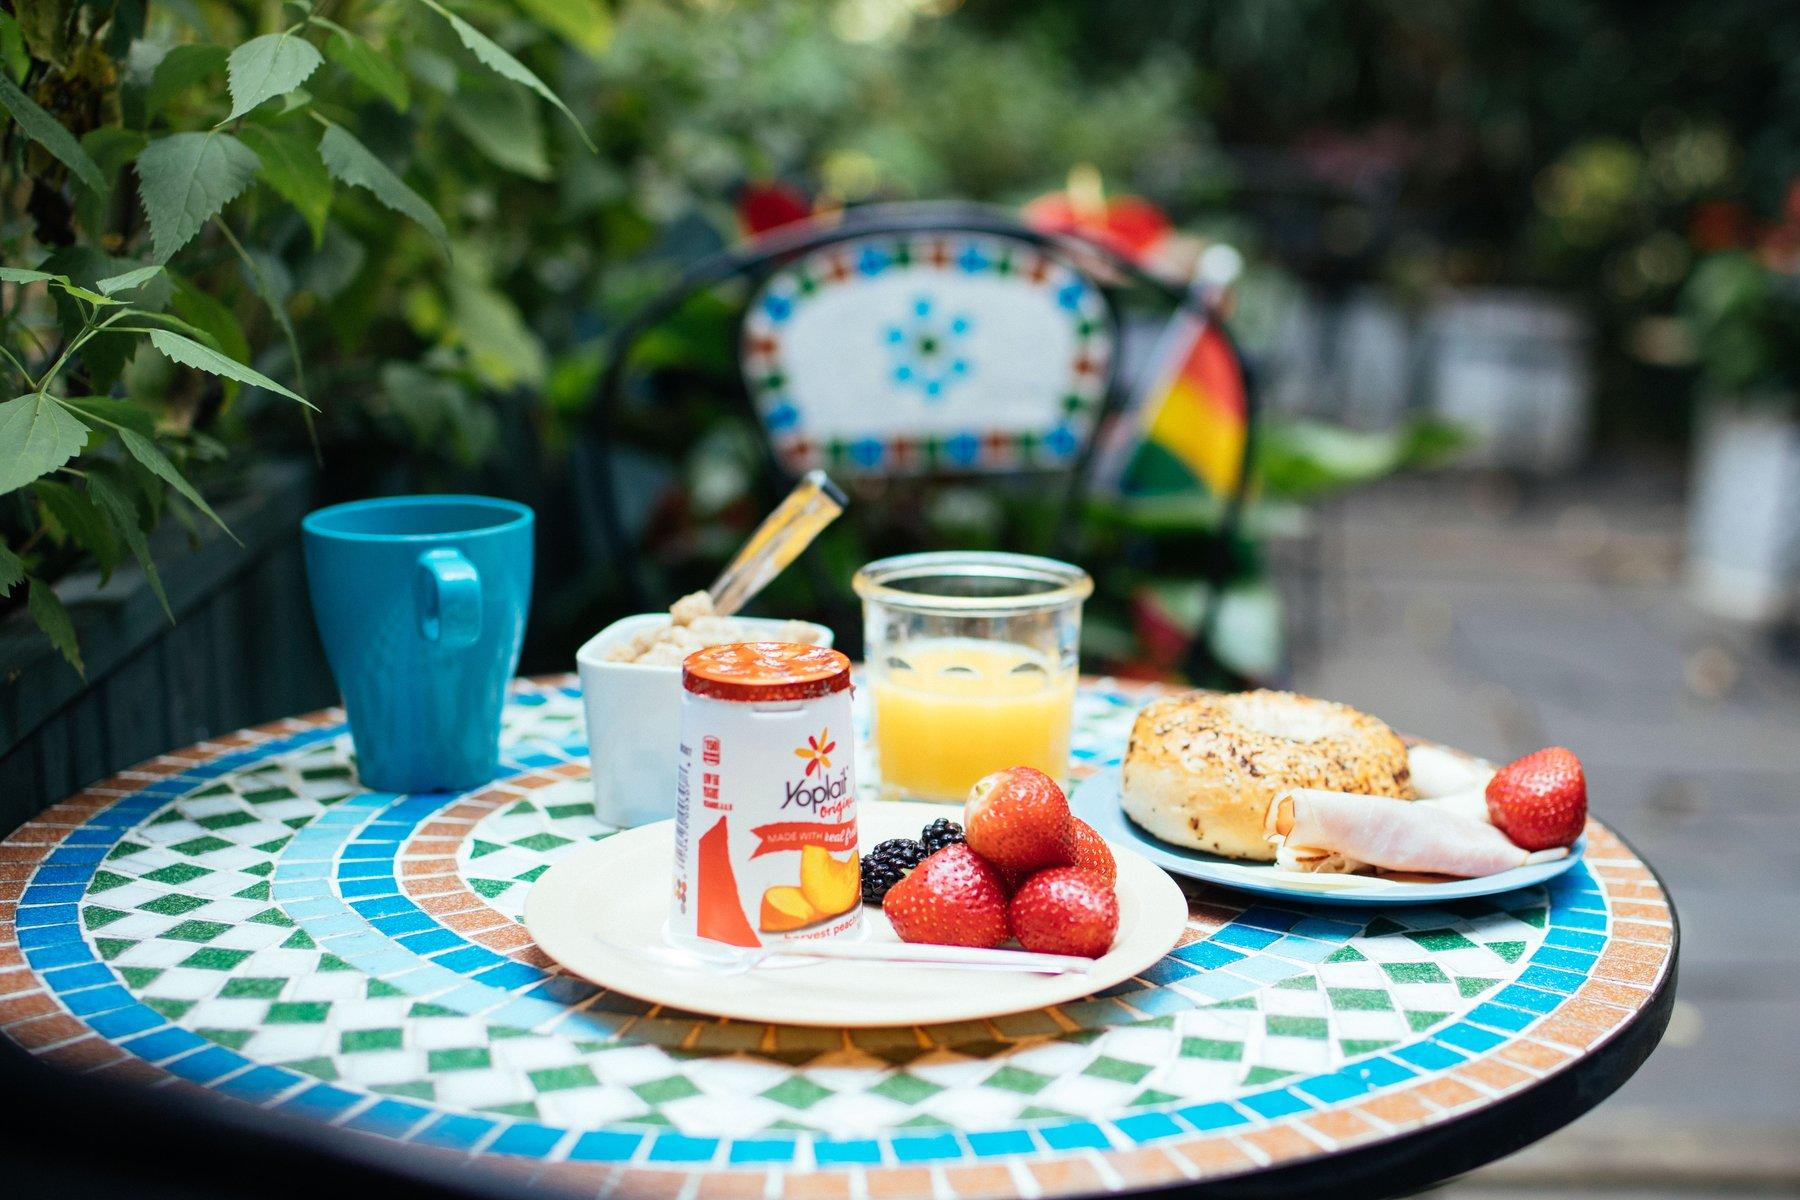 Outdoor bistro table with fresh breakfast.